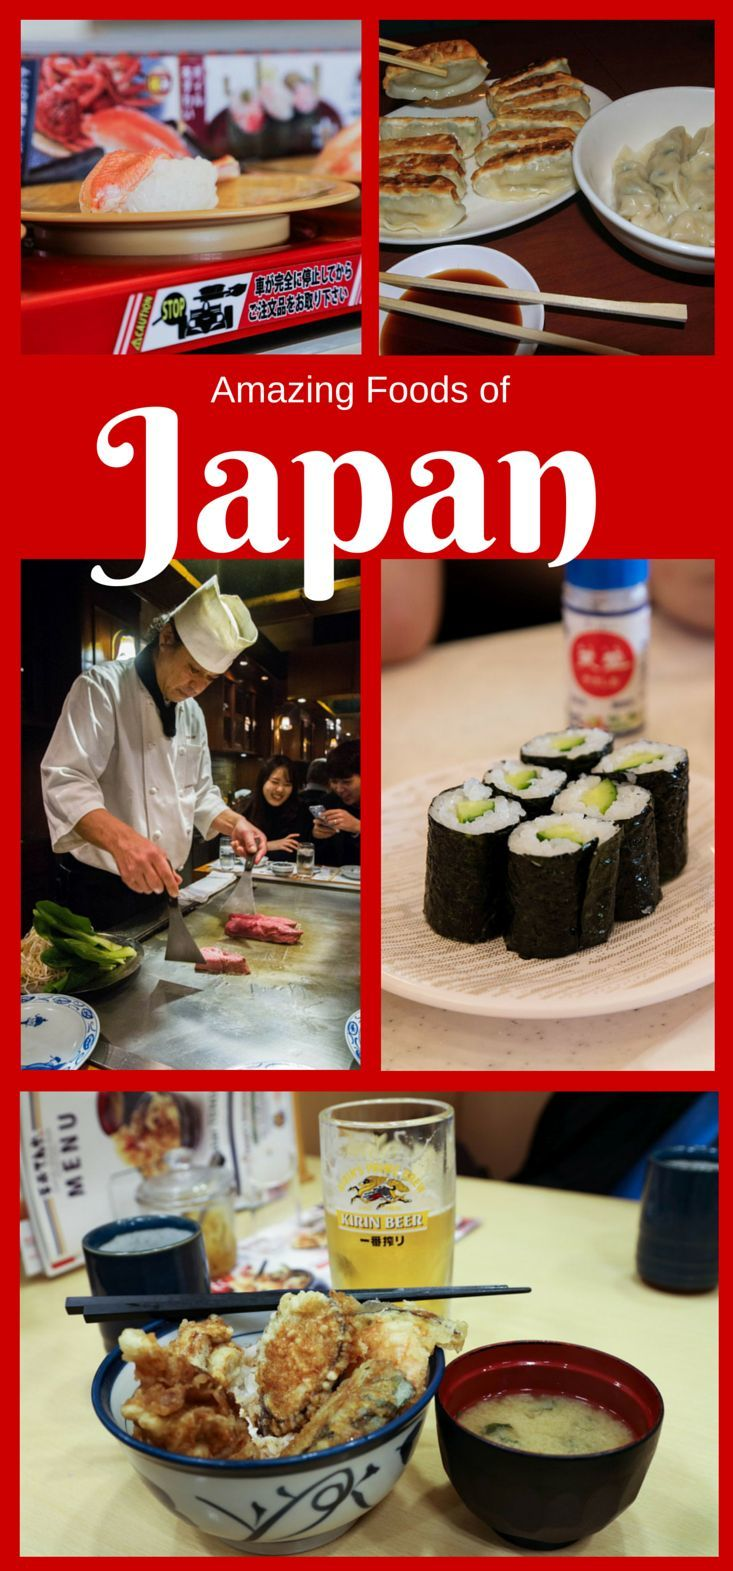 The best thing about a visit to Japan is discovering the best Japanese foods!